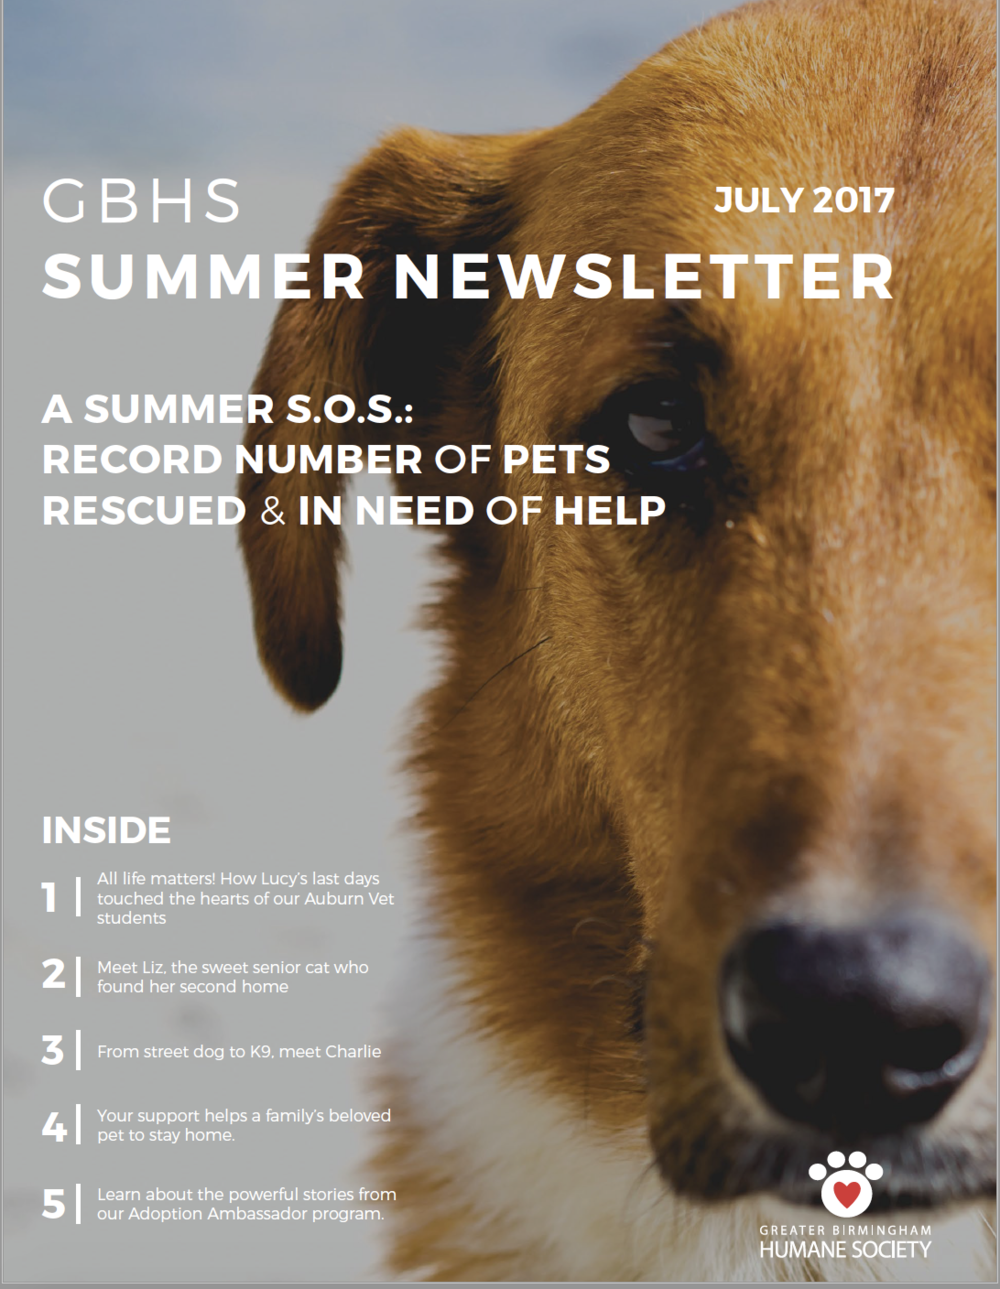 GBHS SUMMER NEWSLETTER -